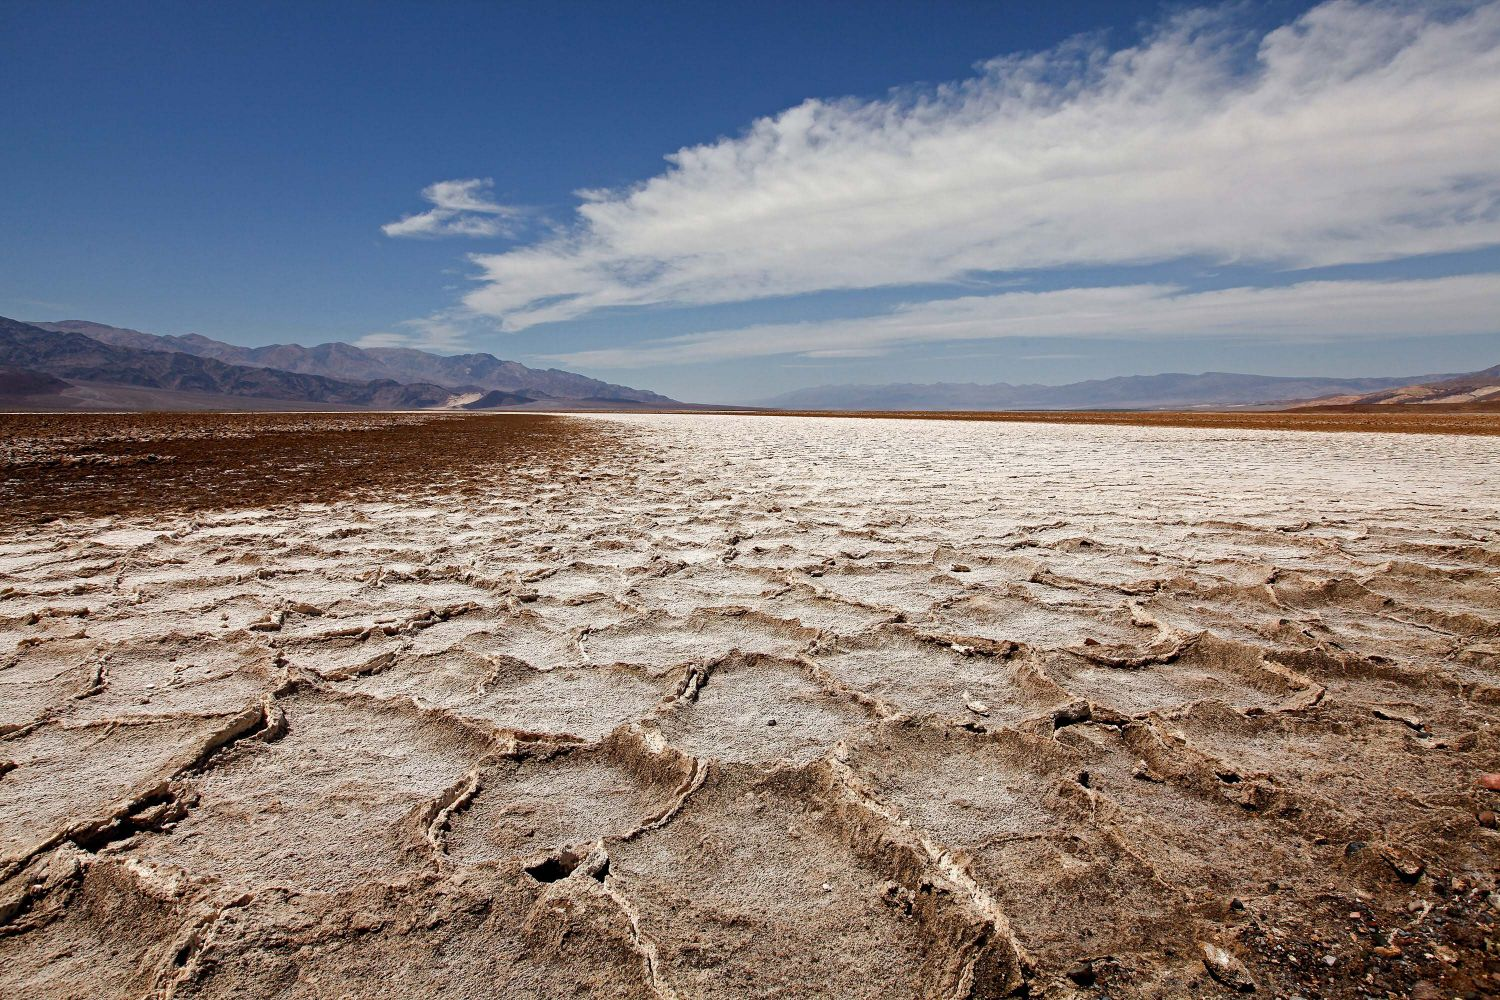 Devils Speedway, Death Valley is a salt pan noted to be the lowest point in North America